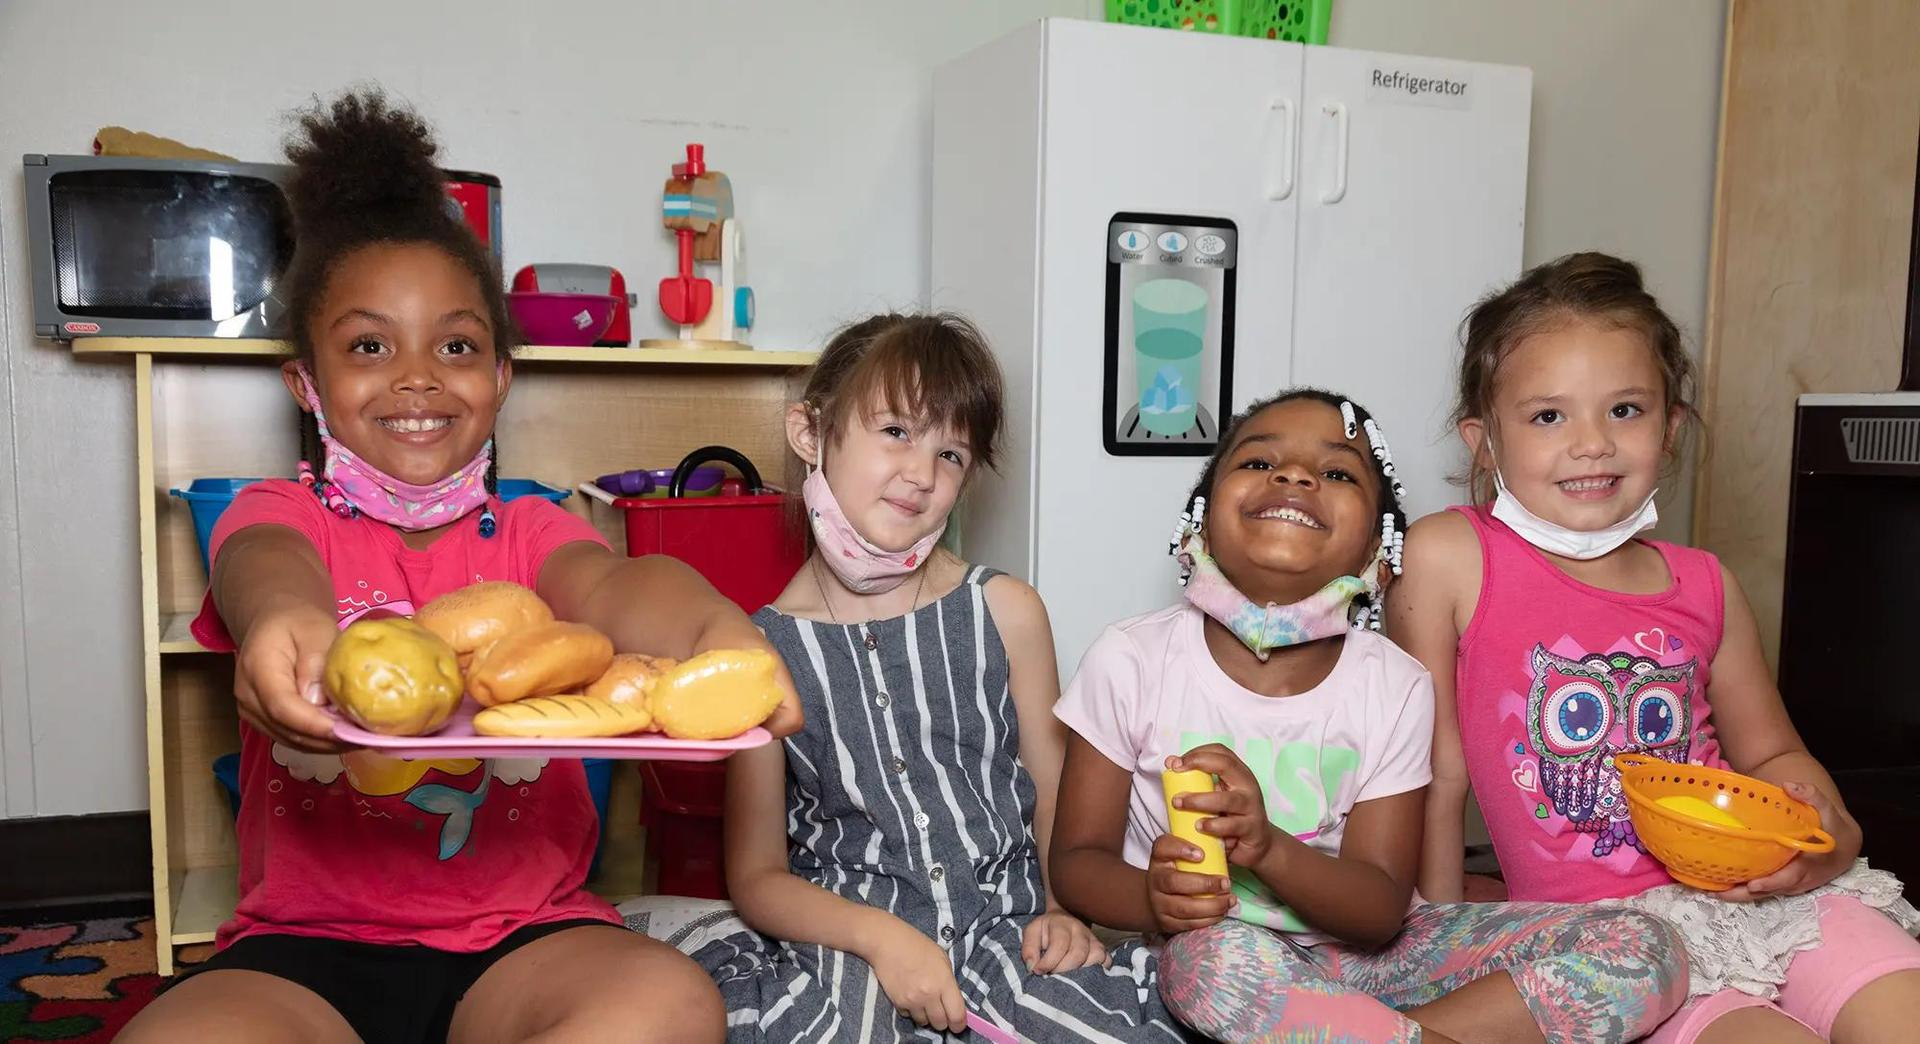 Children holding play food.